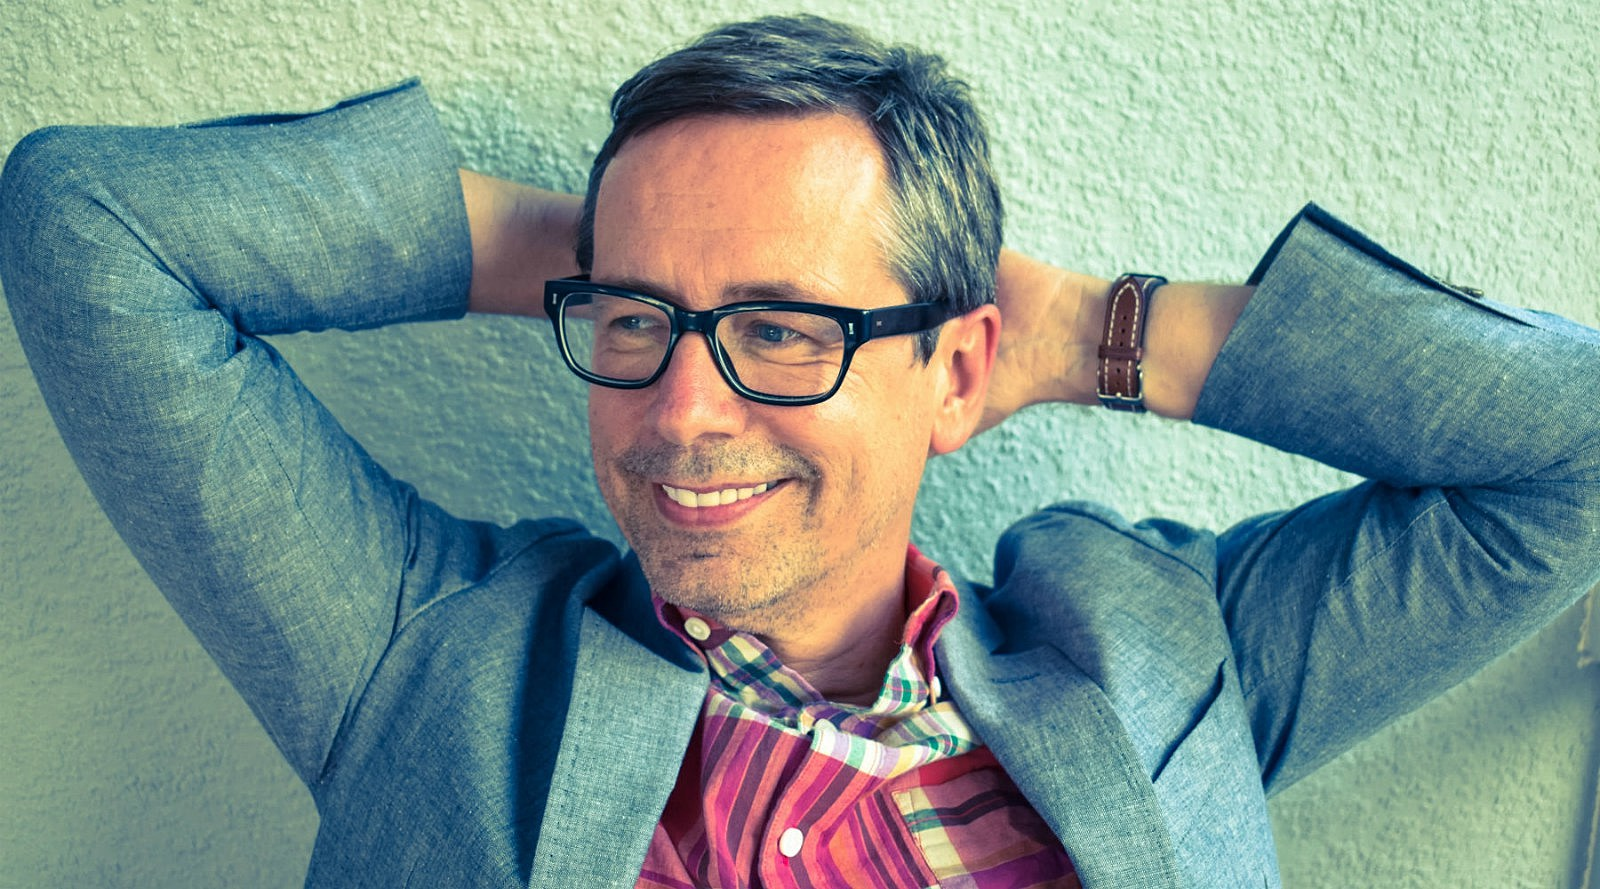 Haircut One Hundreds Nick Heyward Released First Solo Lp In 18